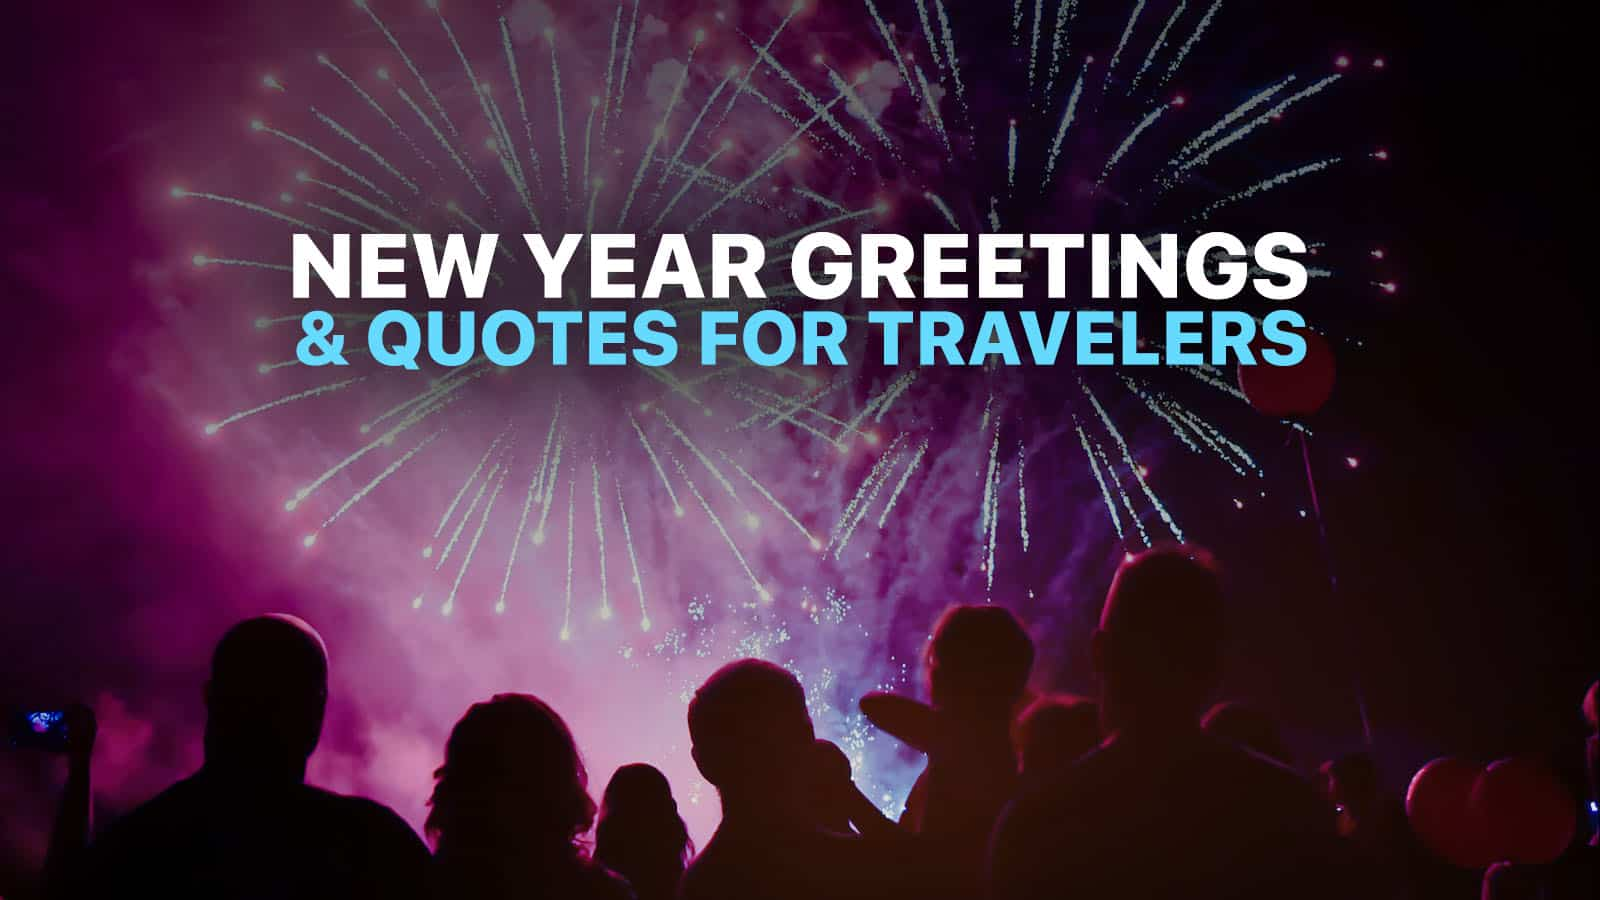 12 new year quotes wishes greetings for travelers 2019